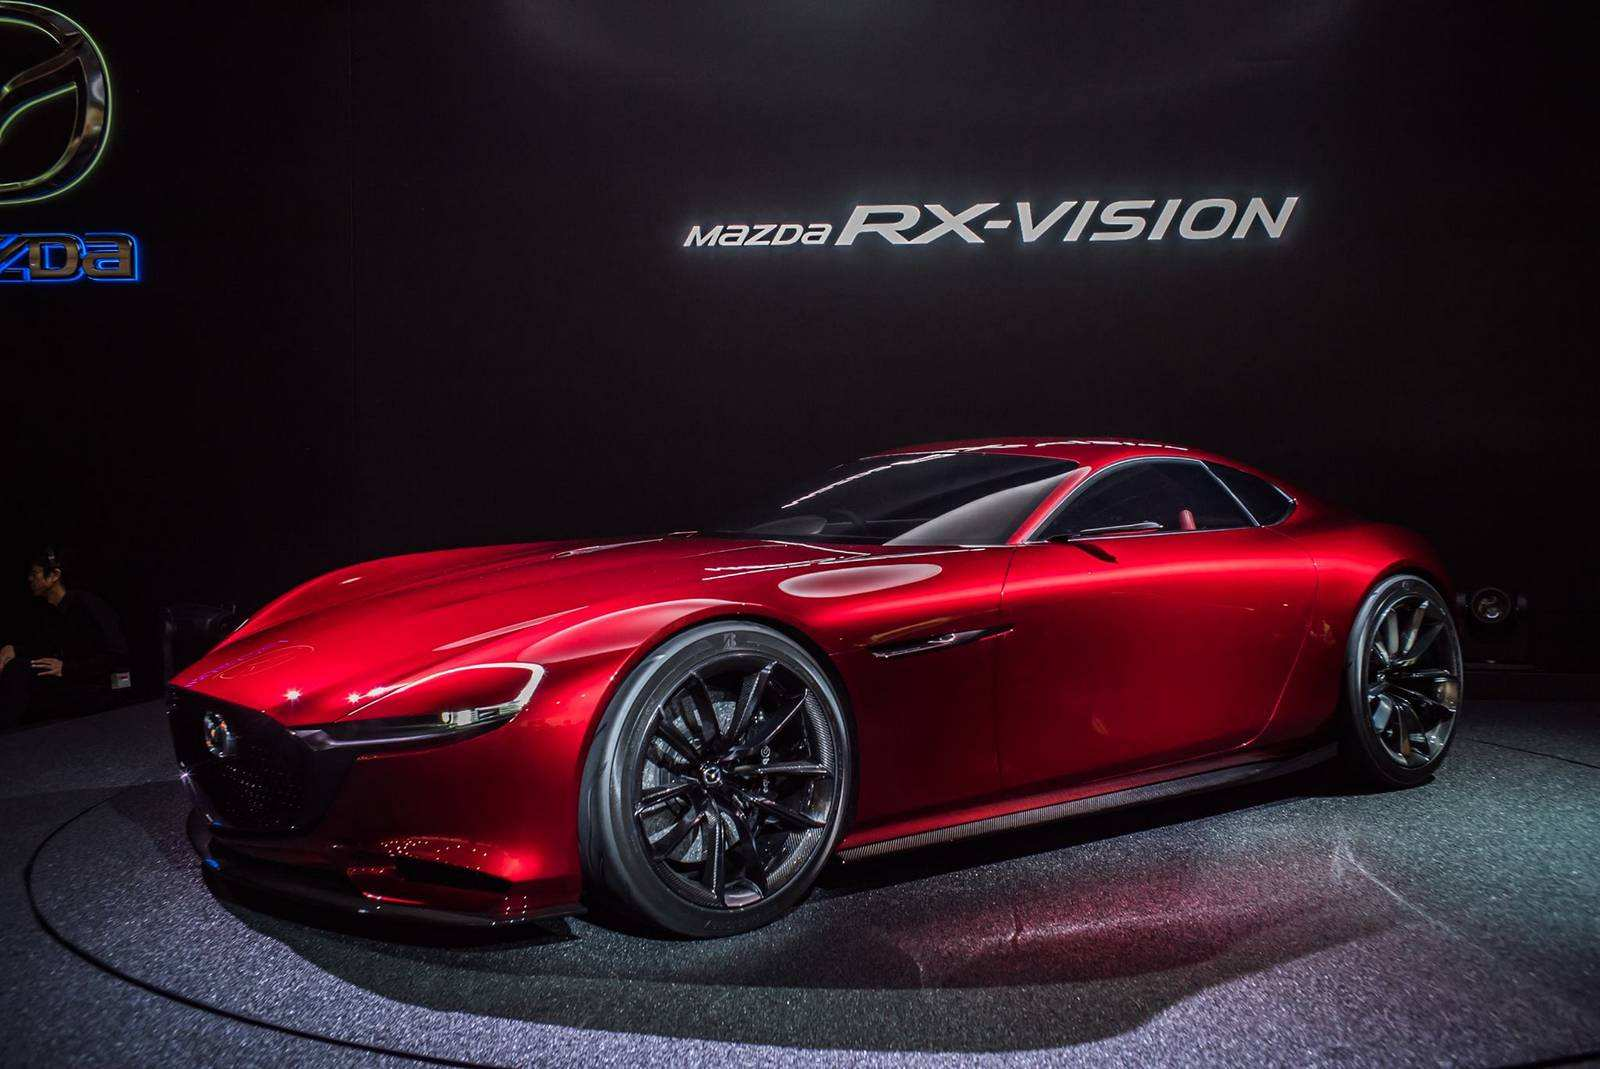 41 All New Mazda Rotary Exterior 2020 Research New with Mazda Rotary Exterior 2020